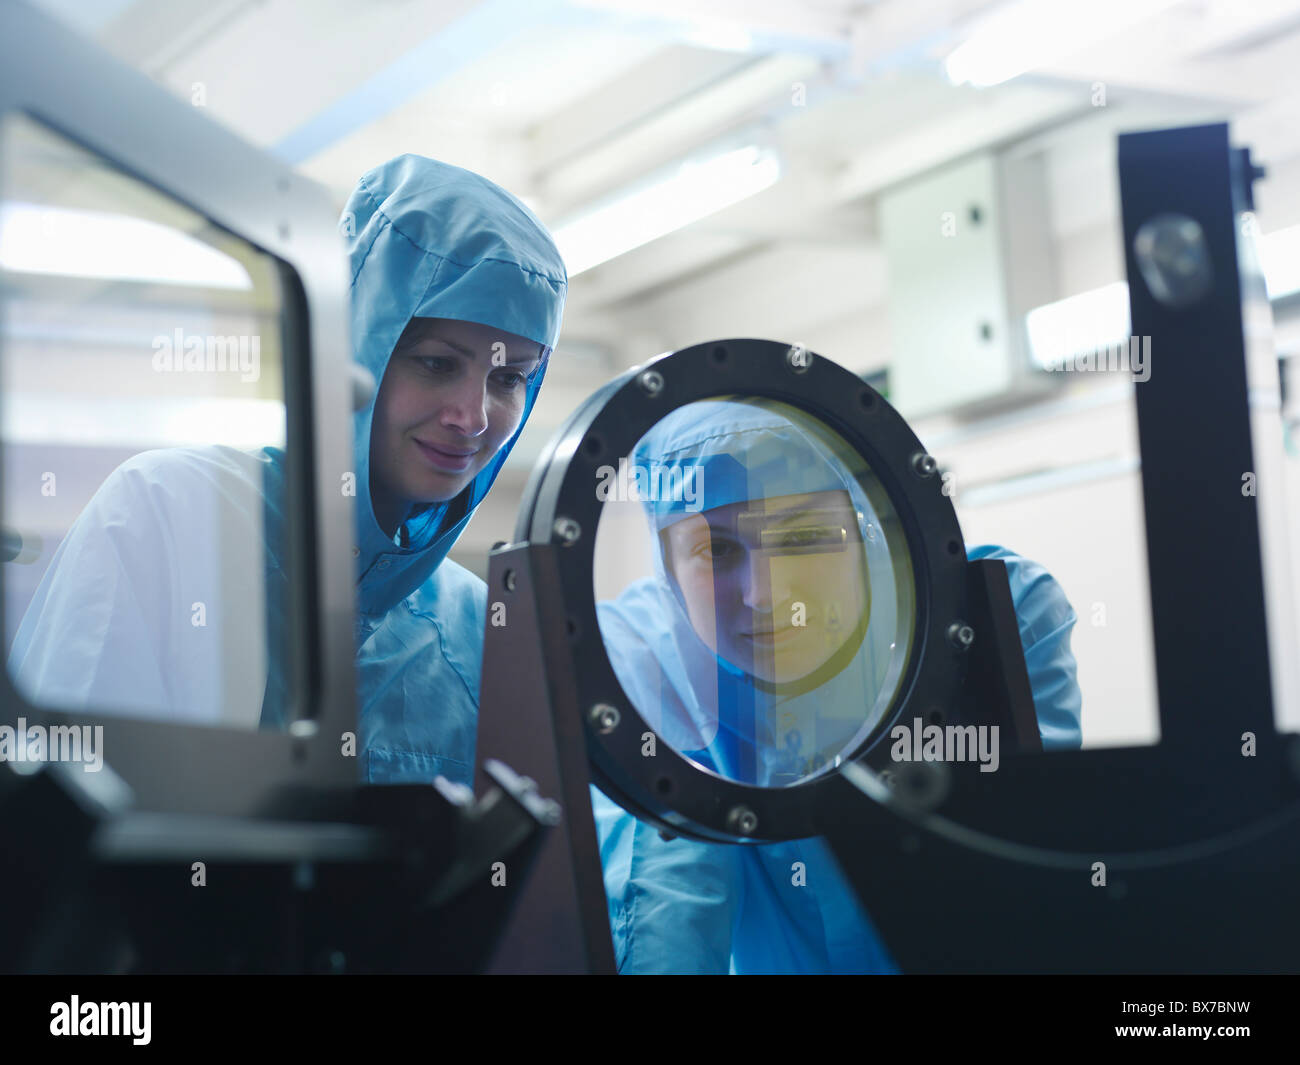 Scientists inspecting laser filter - Stock Image